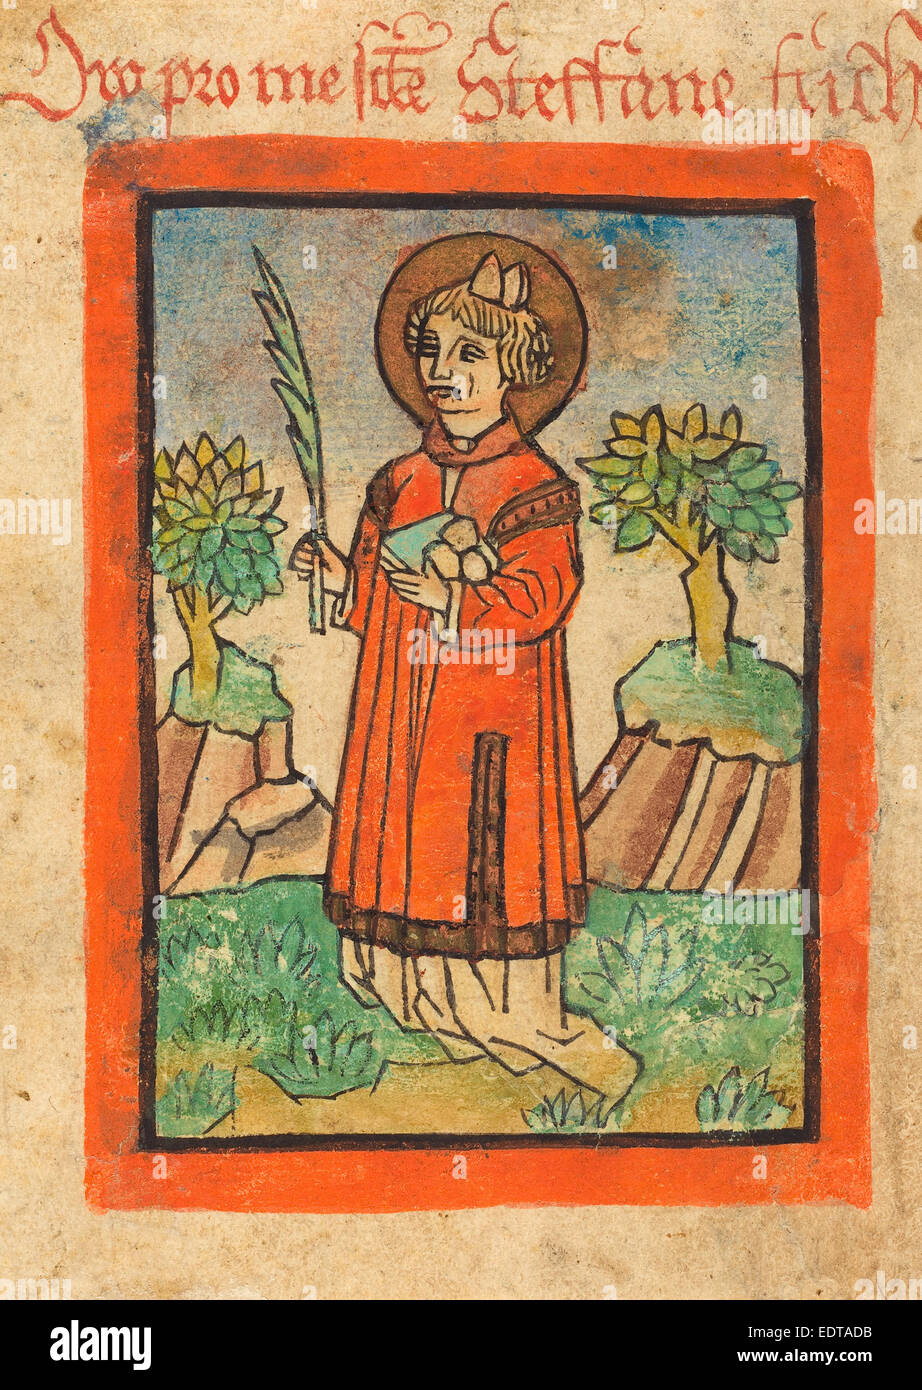 German 15th Century, Saint Stephen, 1450-1470, woodcut, hand-colored in orange, green, blue and brown - Stock Image